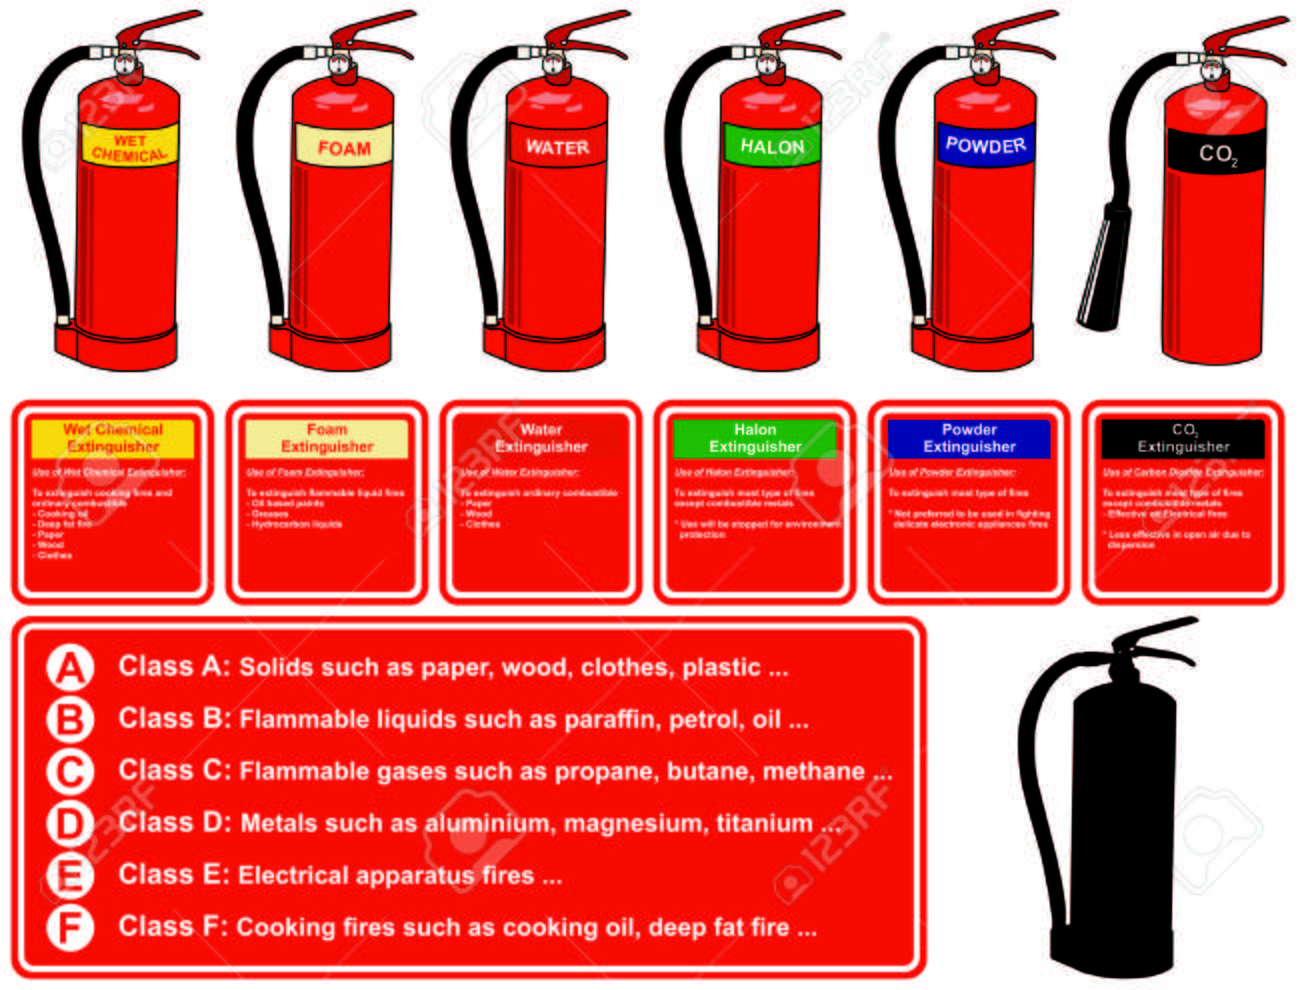 Kinds of fire extinguishers